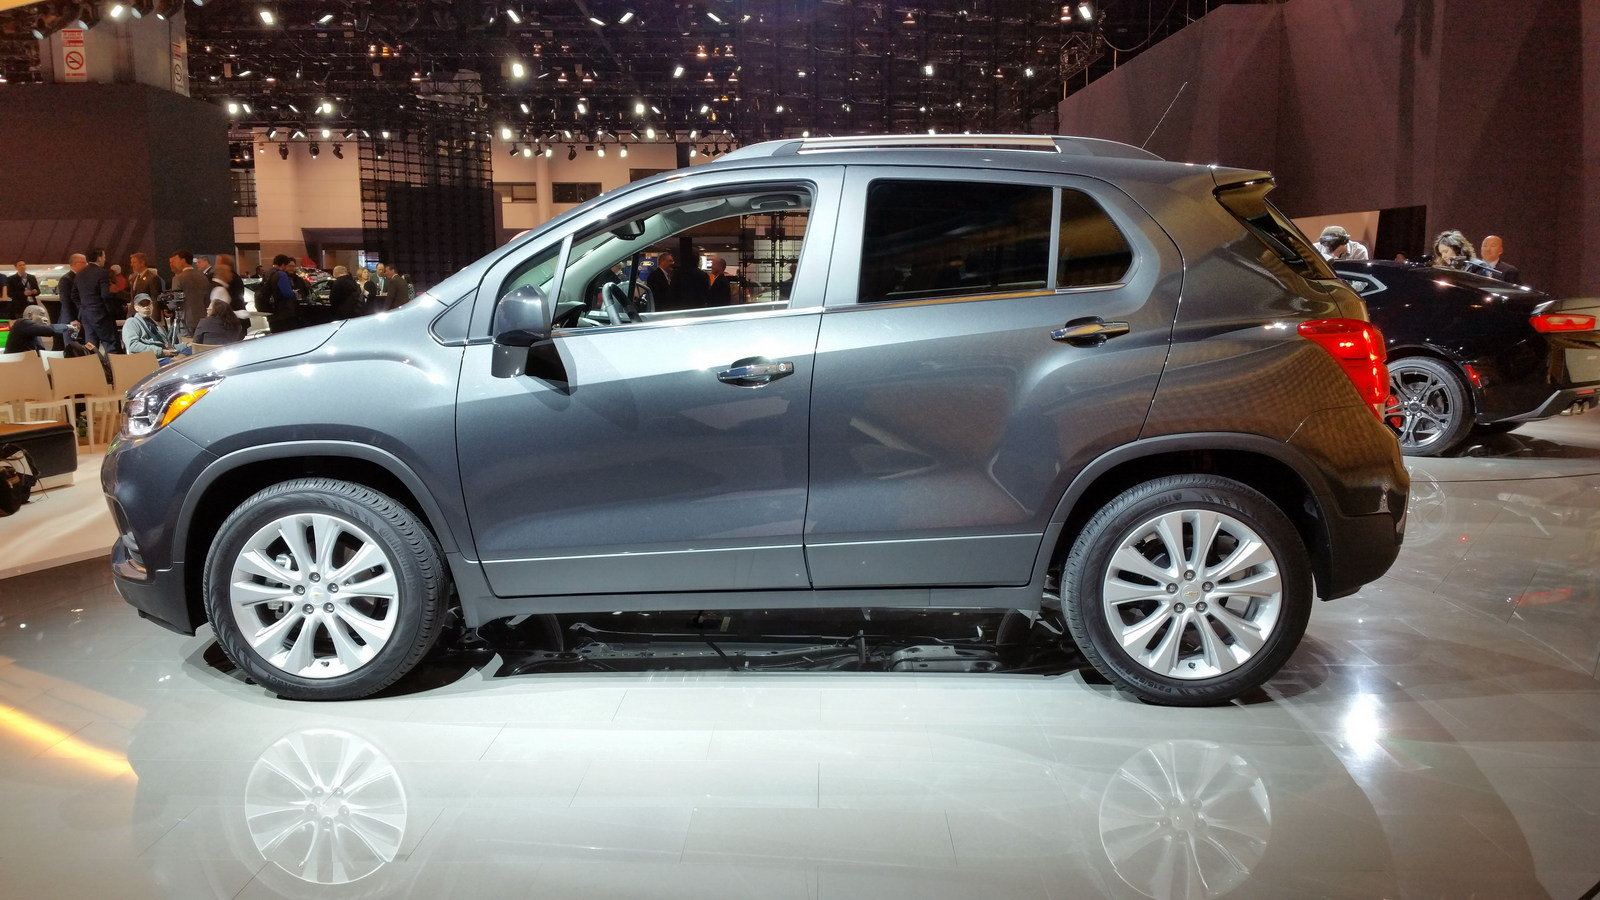 2017 chevrolet trax picture 665383 car review top speed. Black Bedroom Furniture Sets. Home Design Ideas